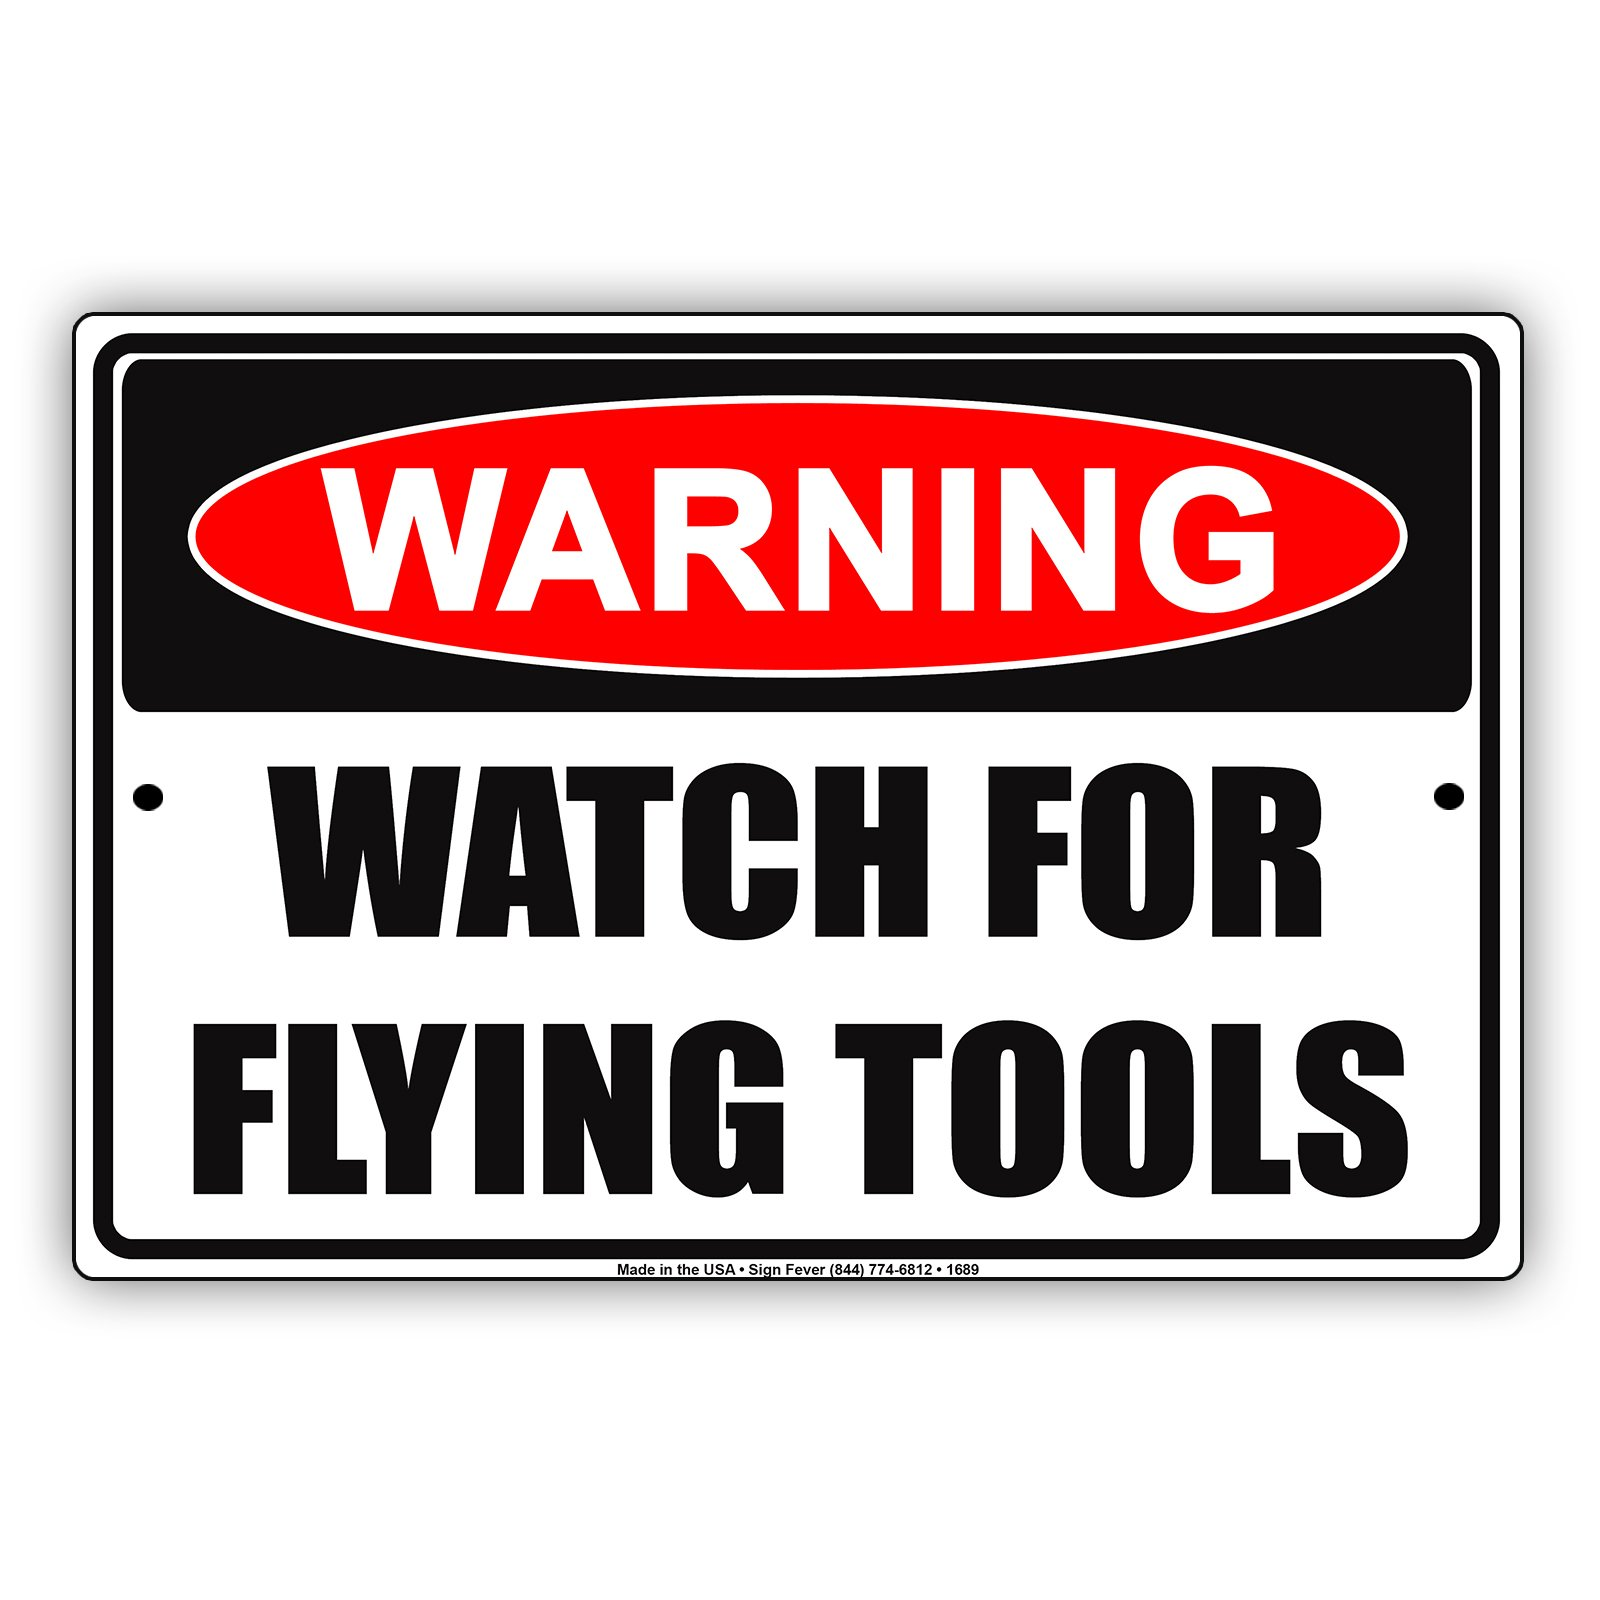 WARNING Watch For Flying Tools Ridiculous Humor Jokes Funny Notice Aluminum Note Metal Tin 8''x12'' Sign Plate